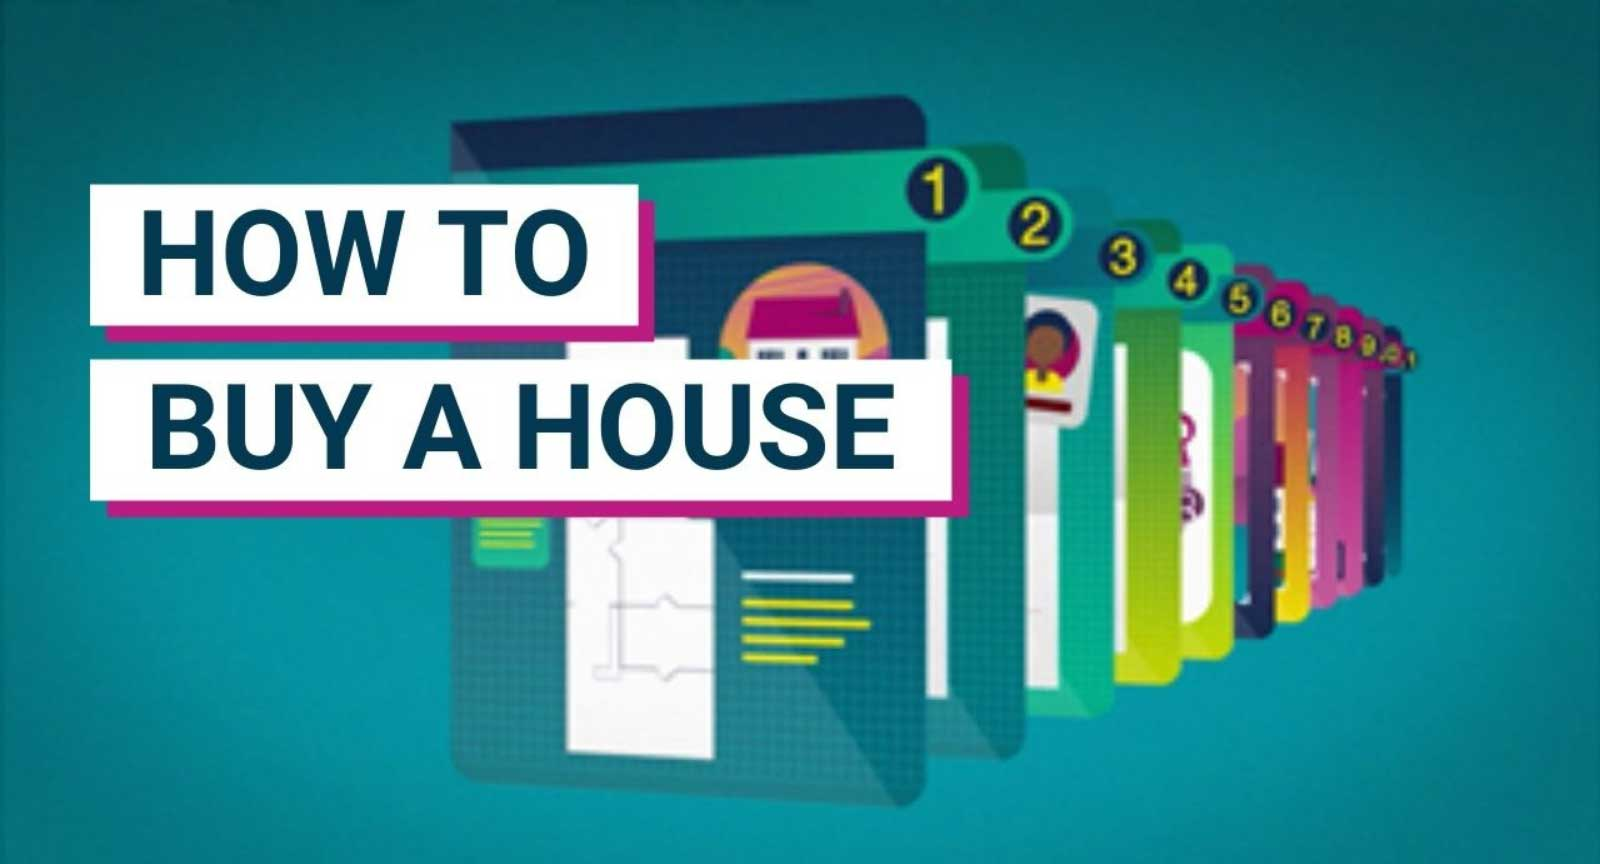 Buying a house video